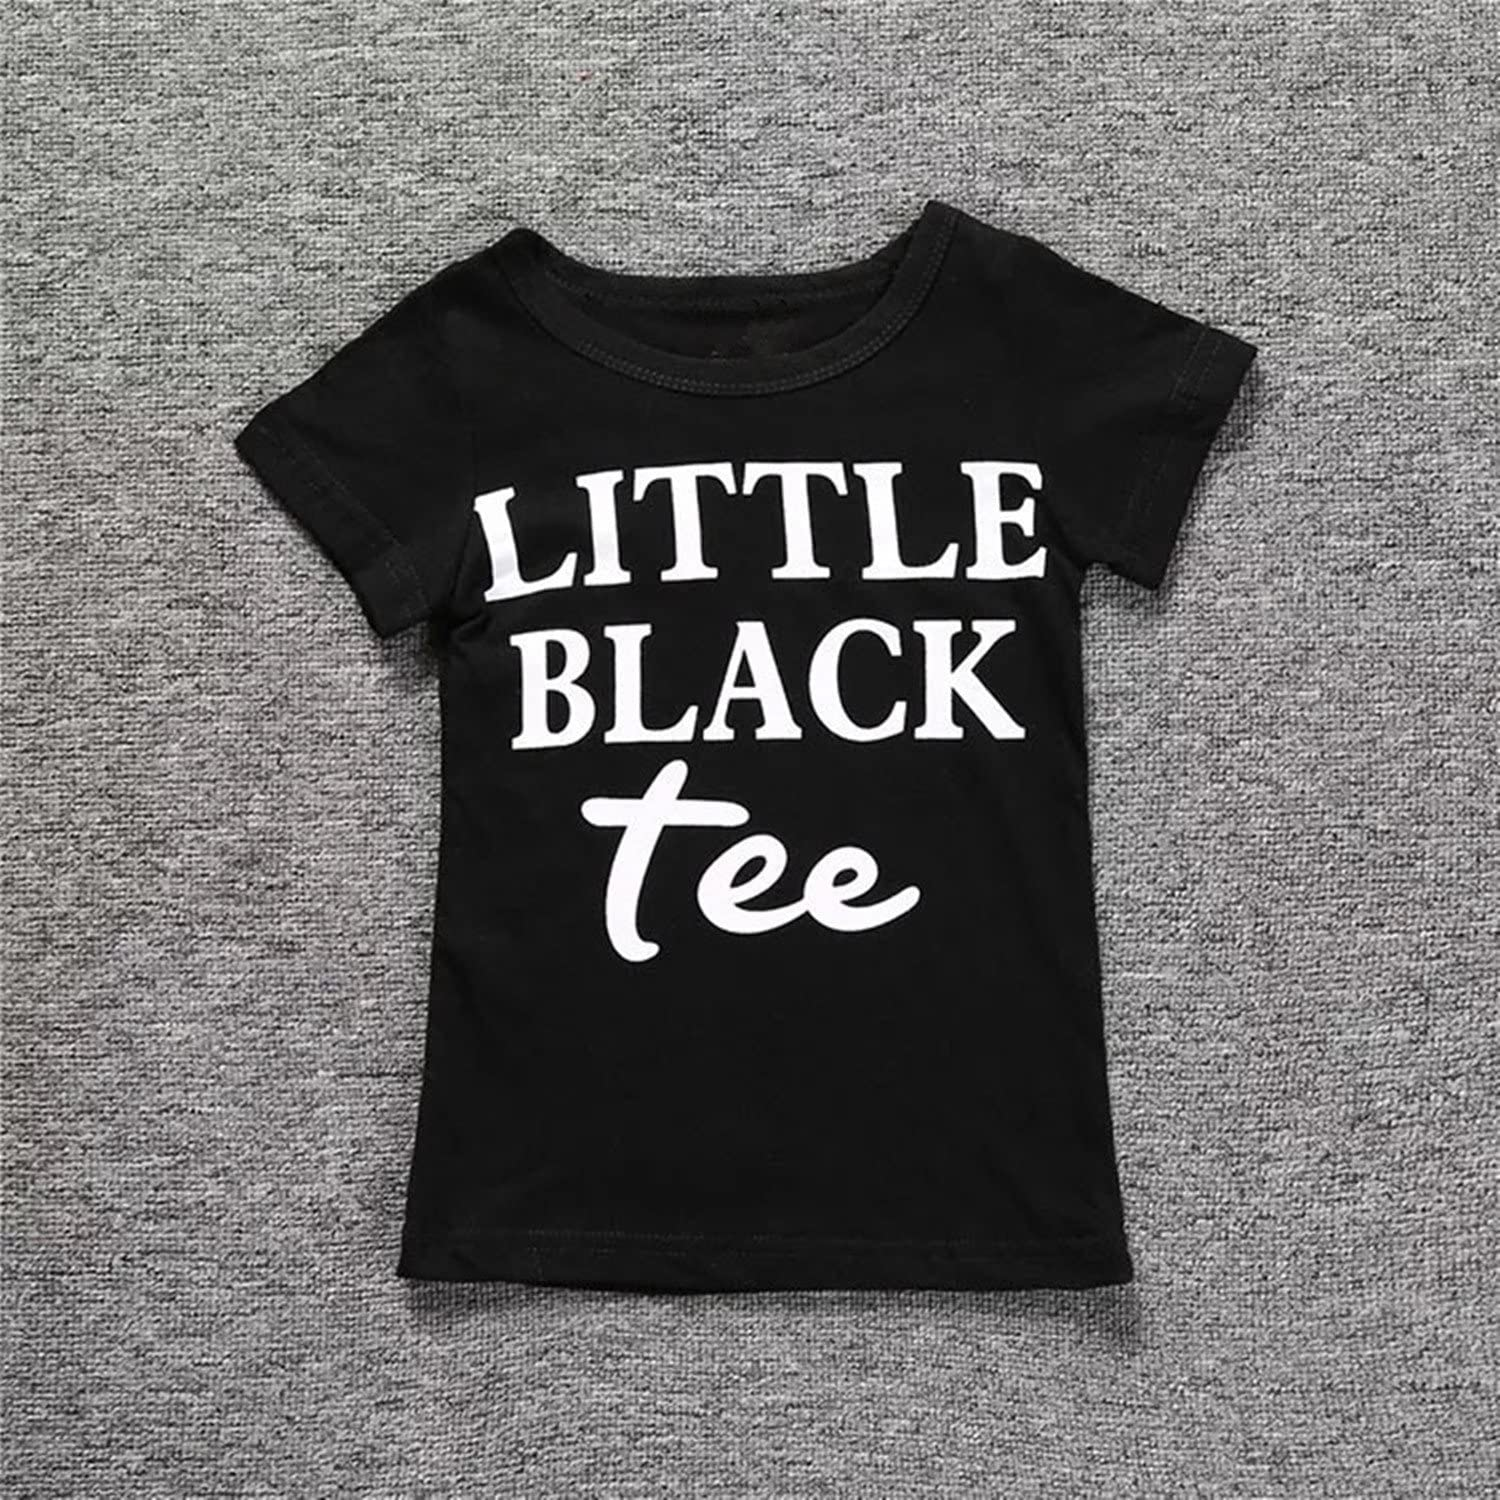 Baby Girls Letters Printed Short T-Shirts and Kids Friend Style Ripped Shorts Outfits